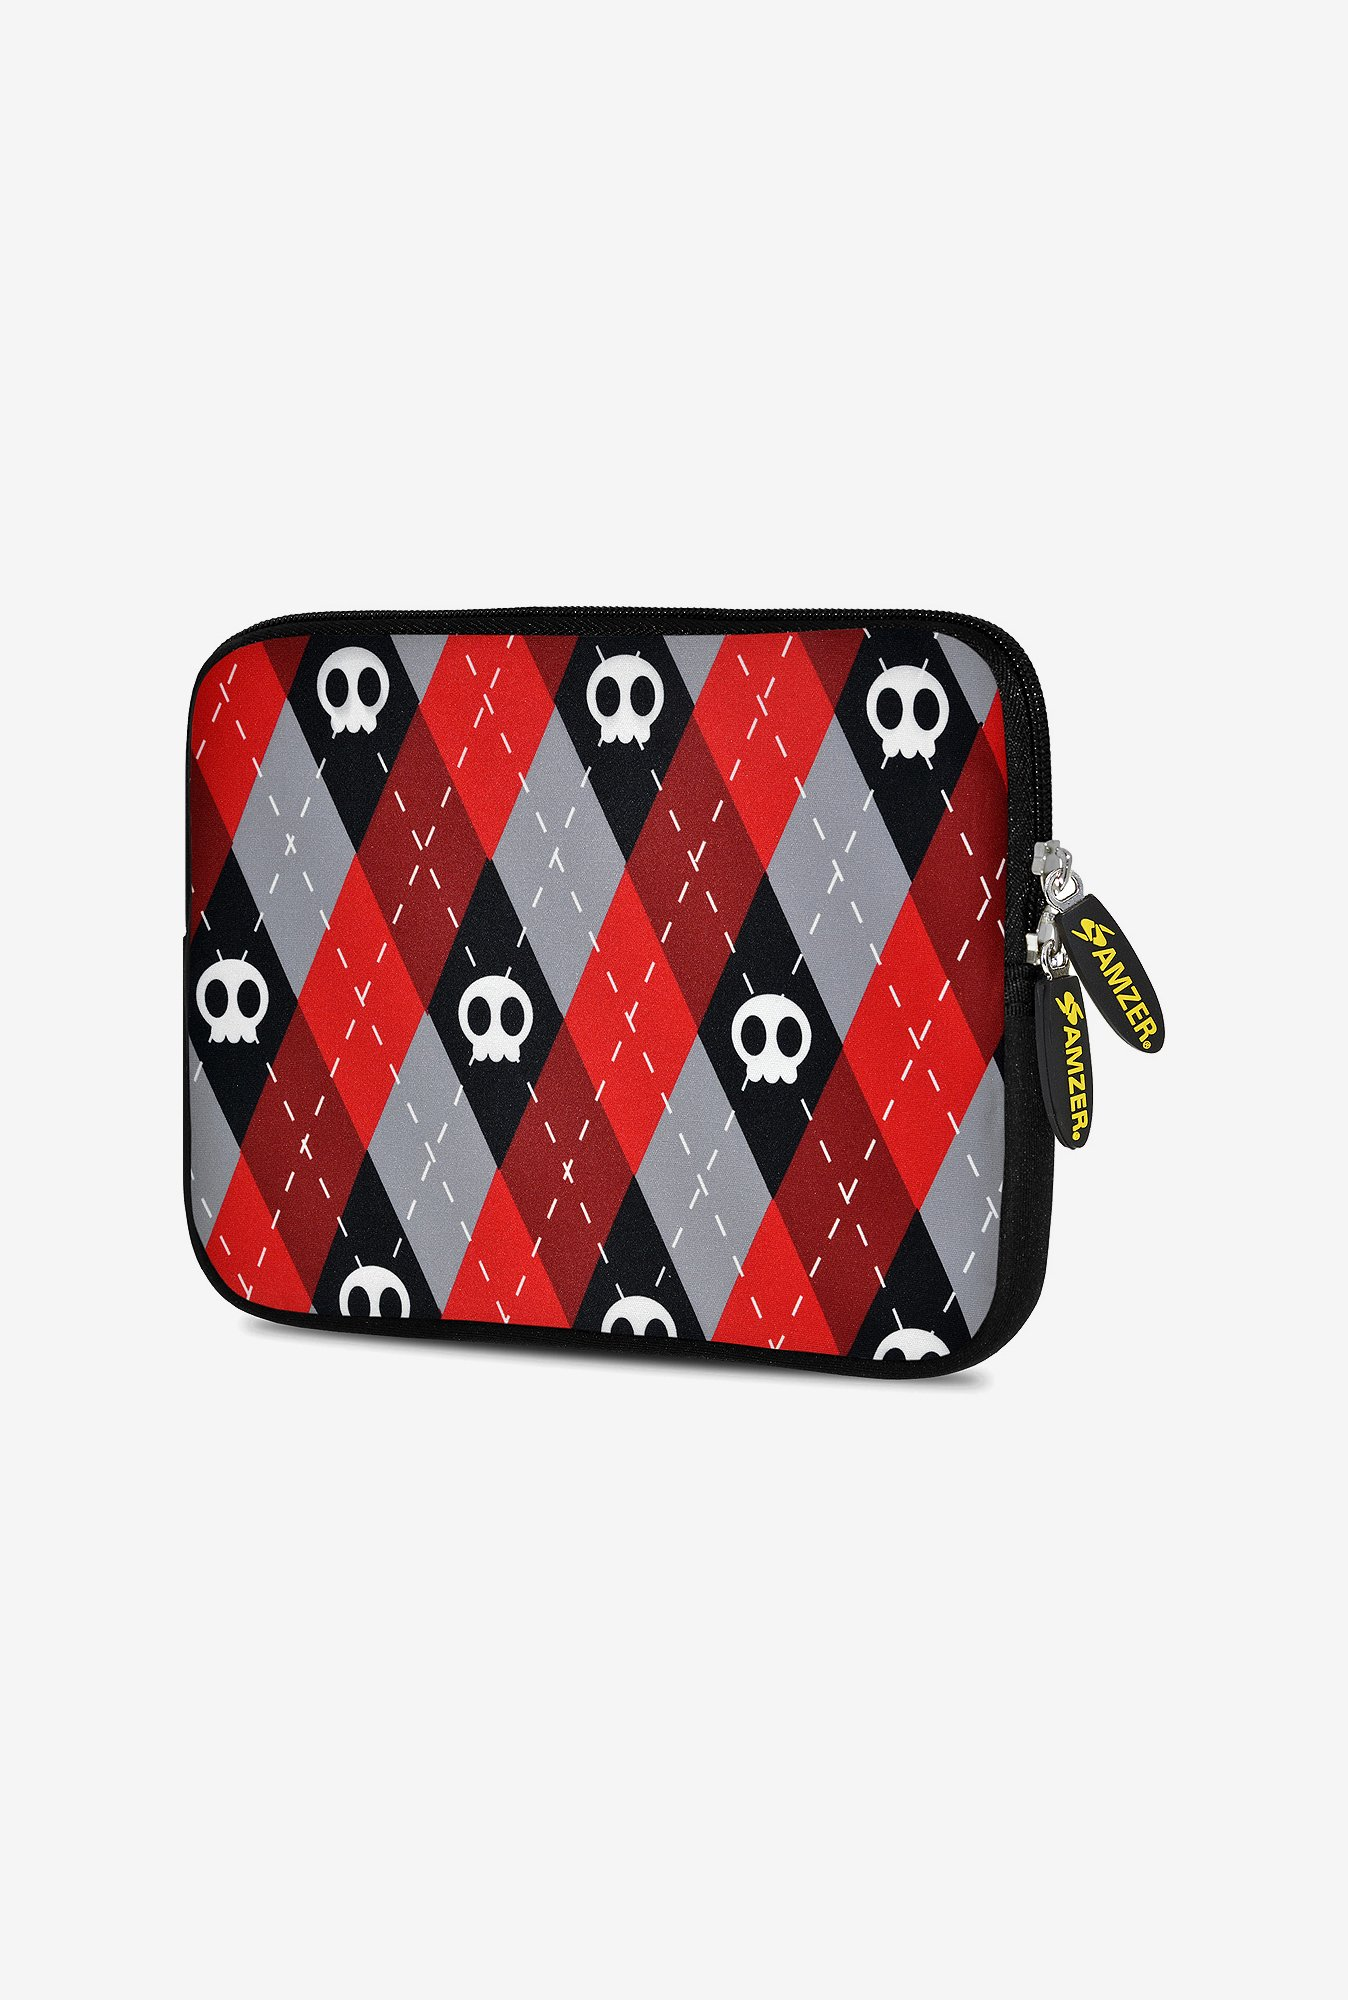 Amzer 10.5 Inch Neoprene Sleeve - Cross Check